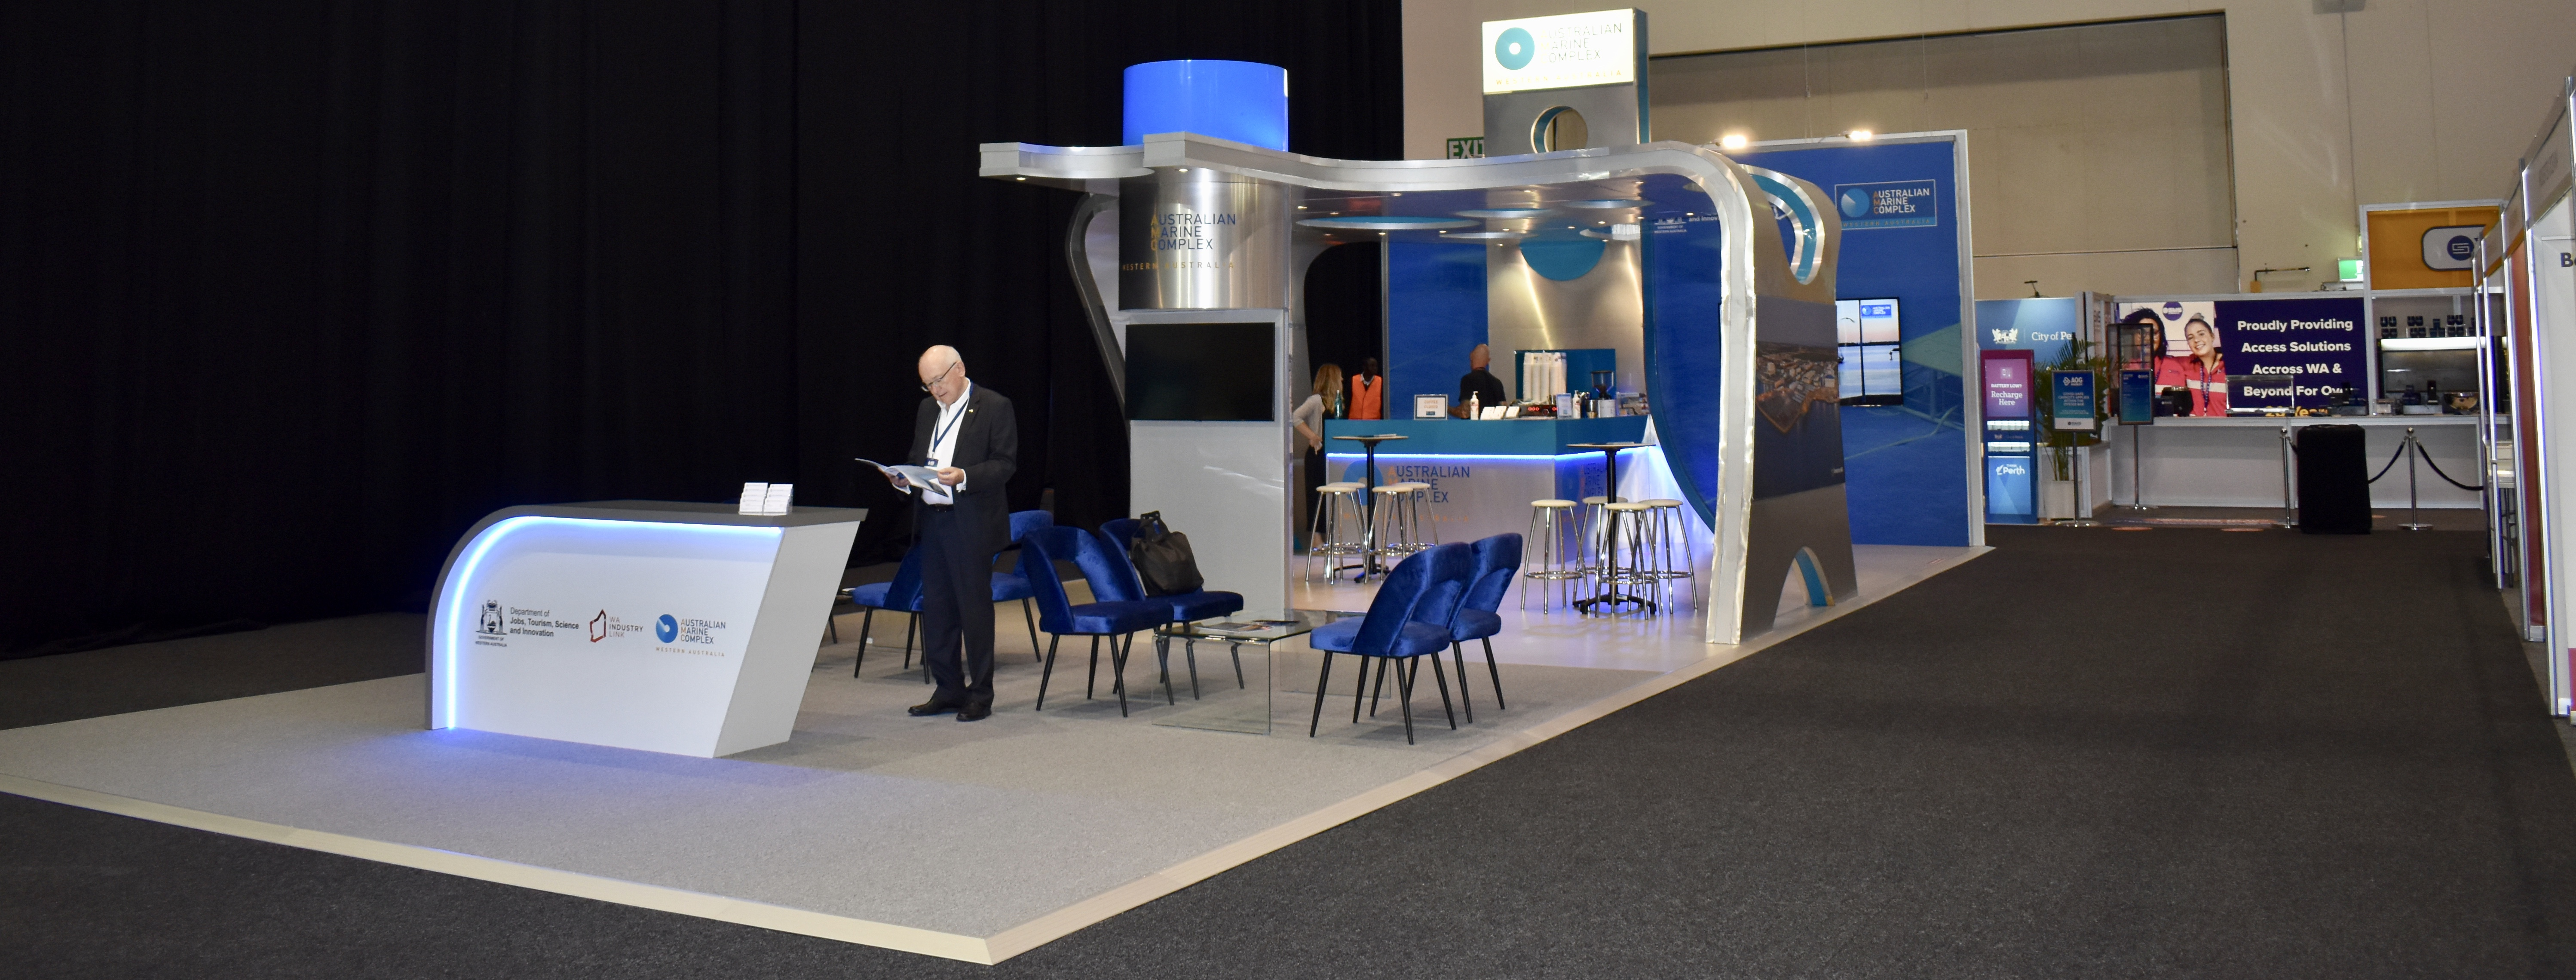 Perth's Premier Trade Show Displays